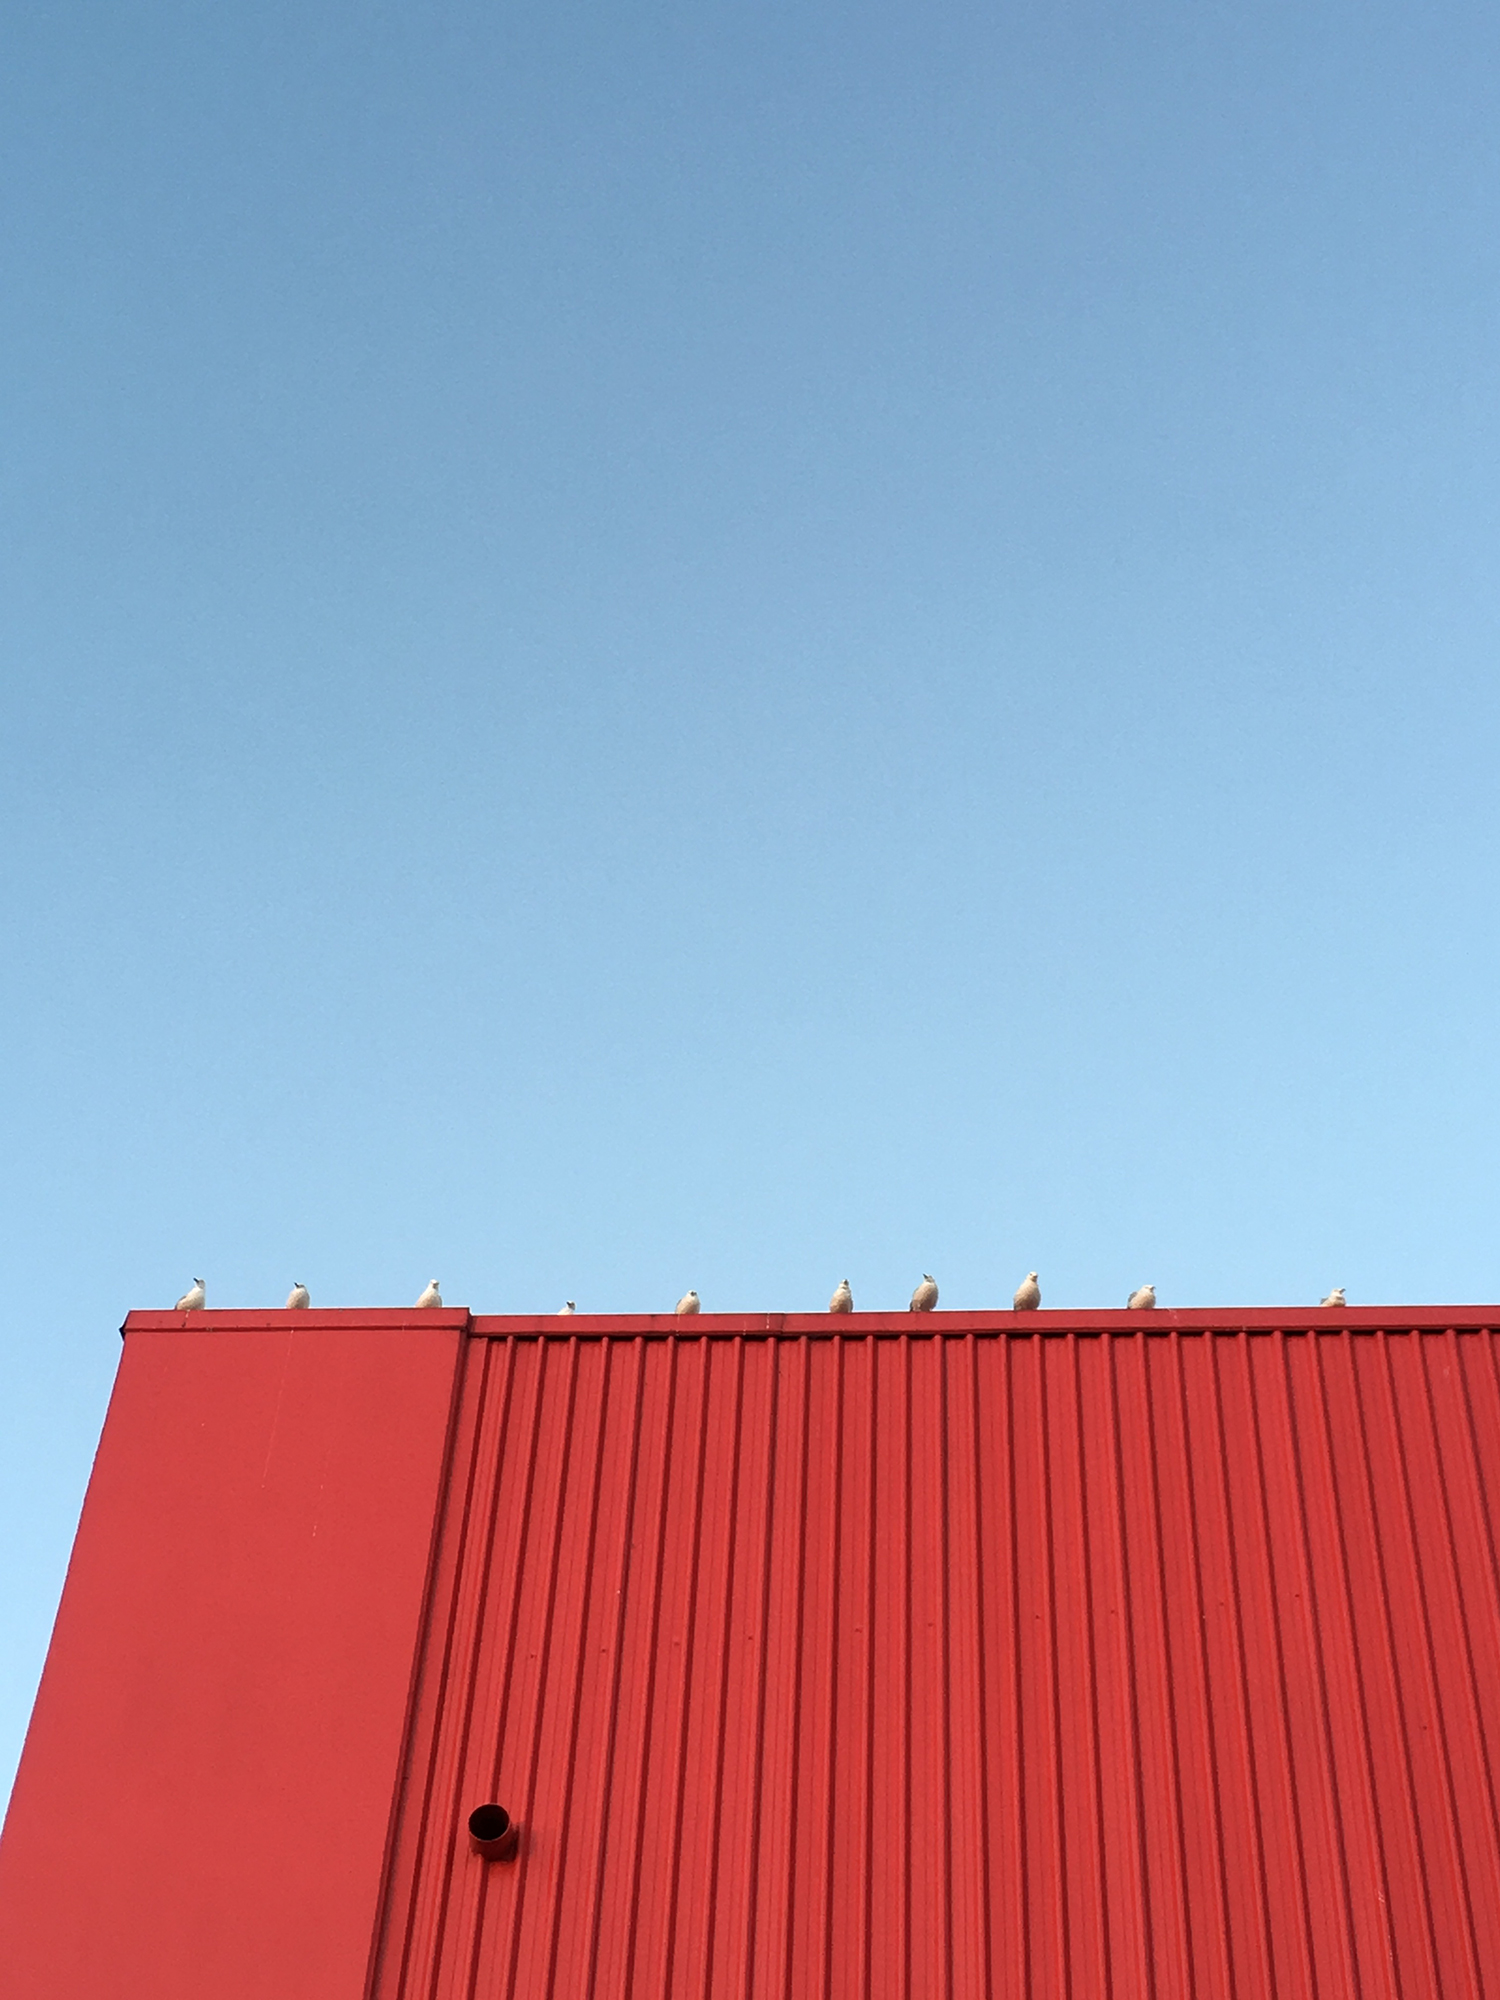 Birds on a red roof in Pakuranga, Auckland, New Zealand